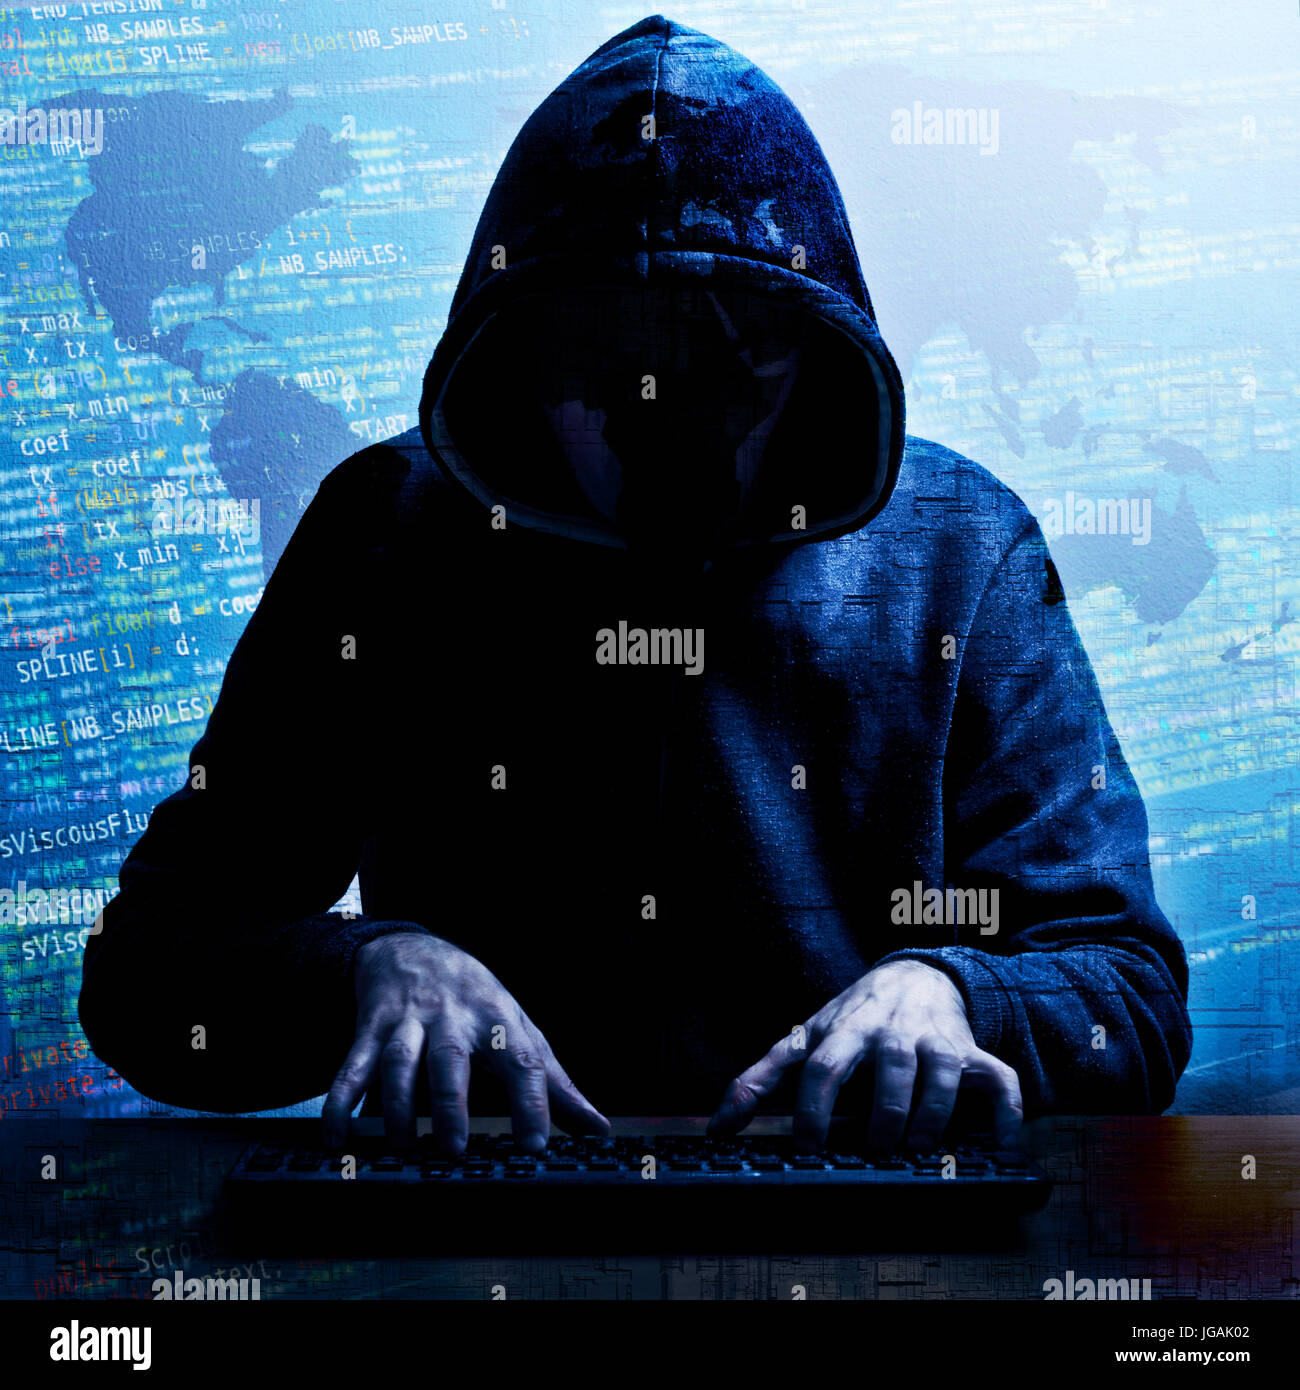 global hacking activity concept Stock Photo